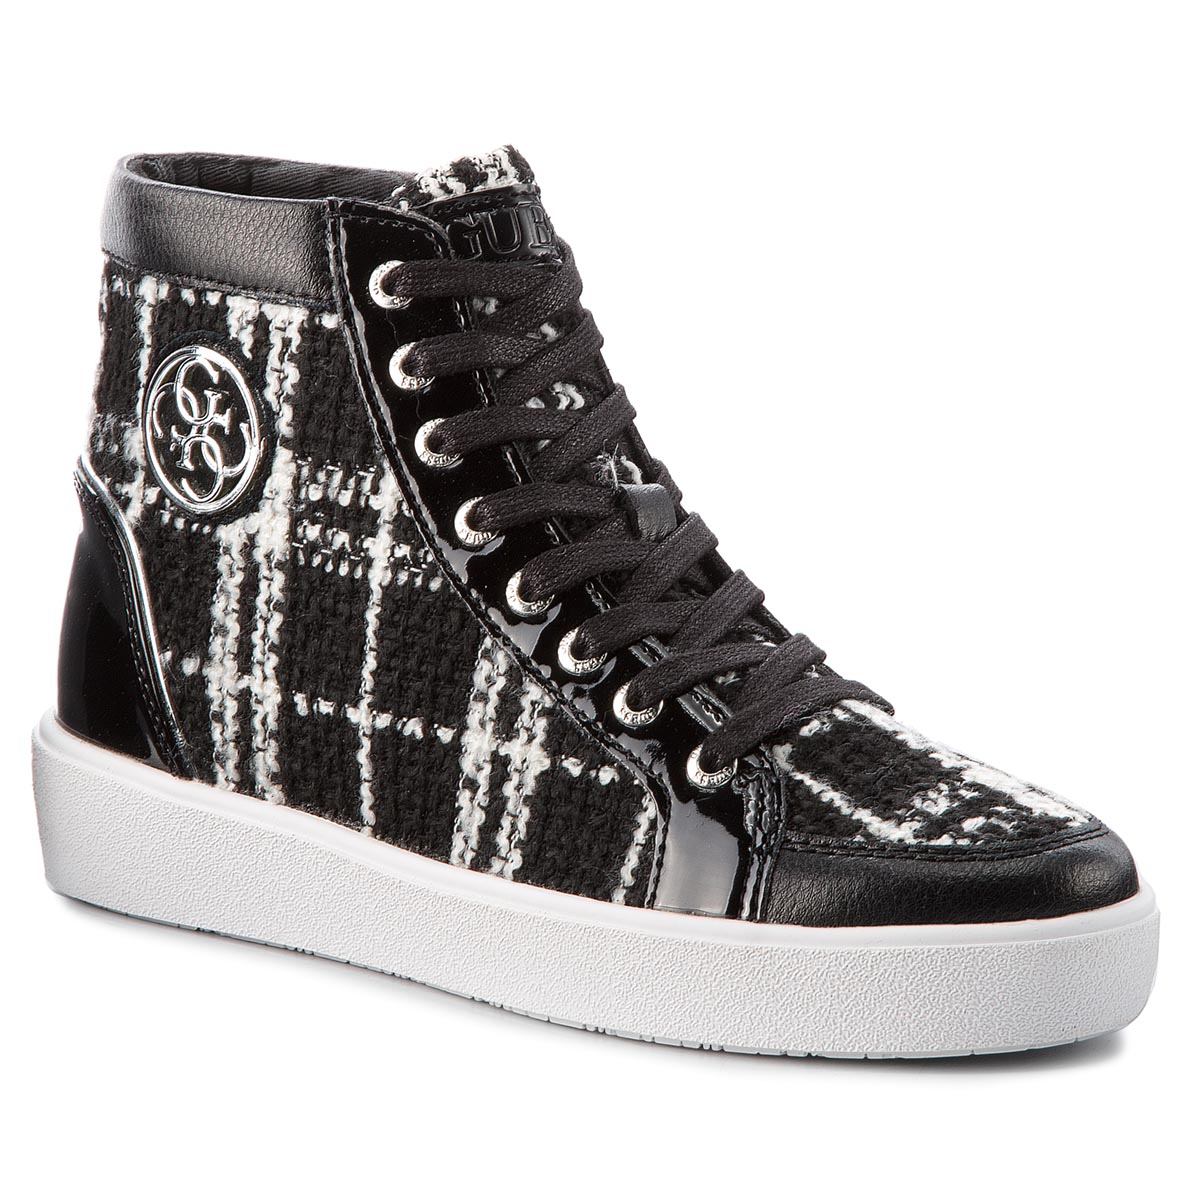 Sneakersy GUESS - FLACE3 FAB12 WHITBL